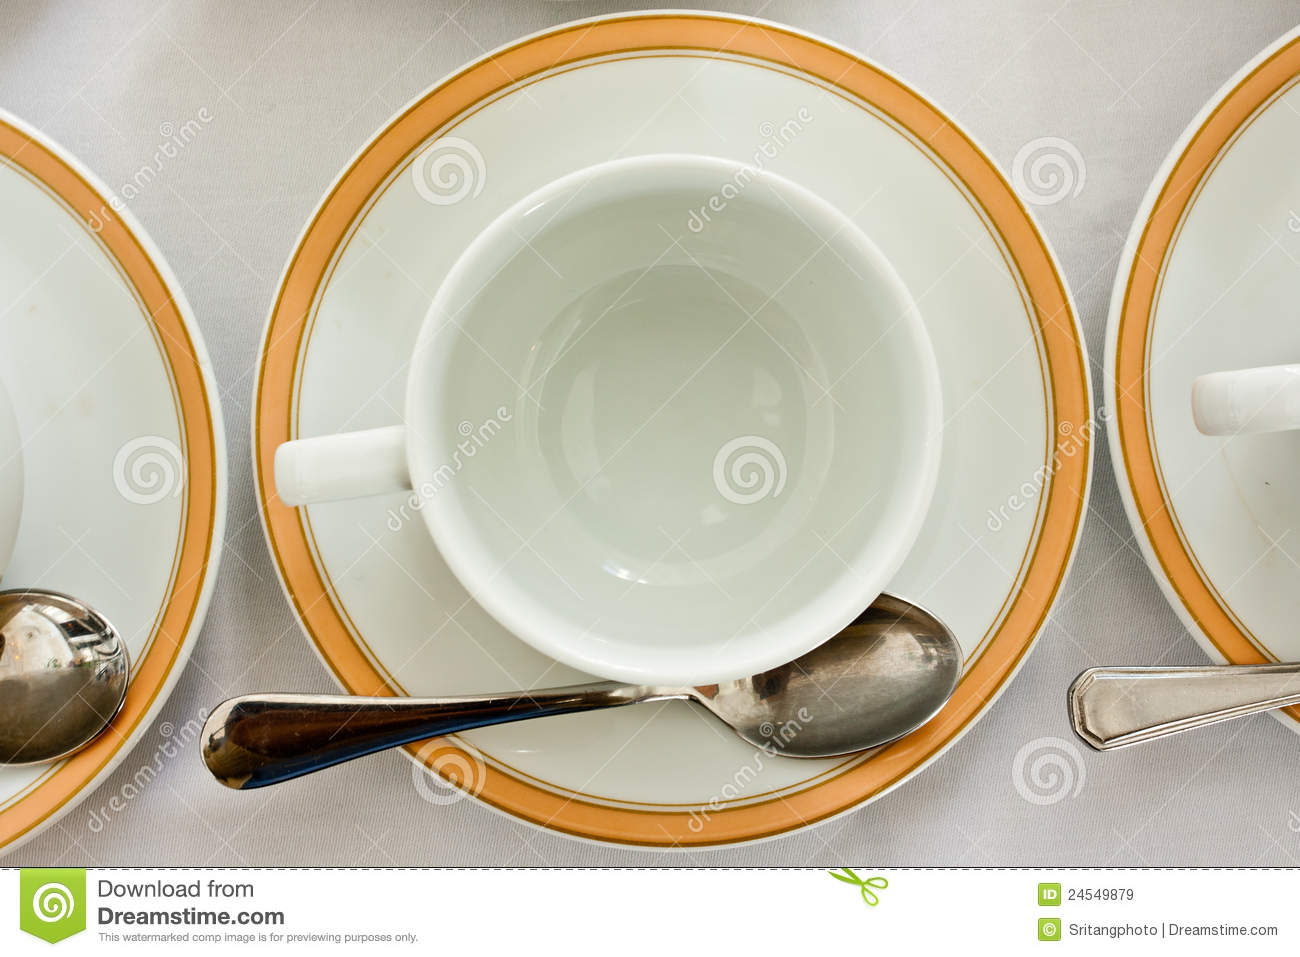 Empty Cup Top : Empty cup and saucer top view royalty free stock images